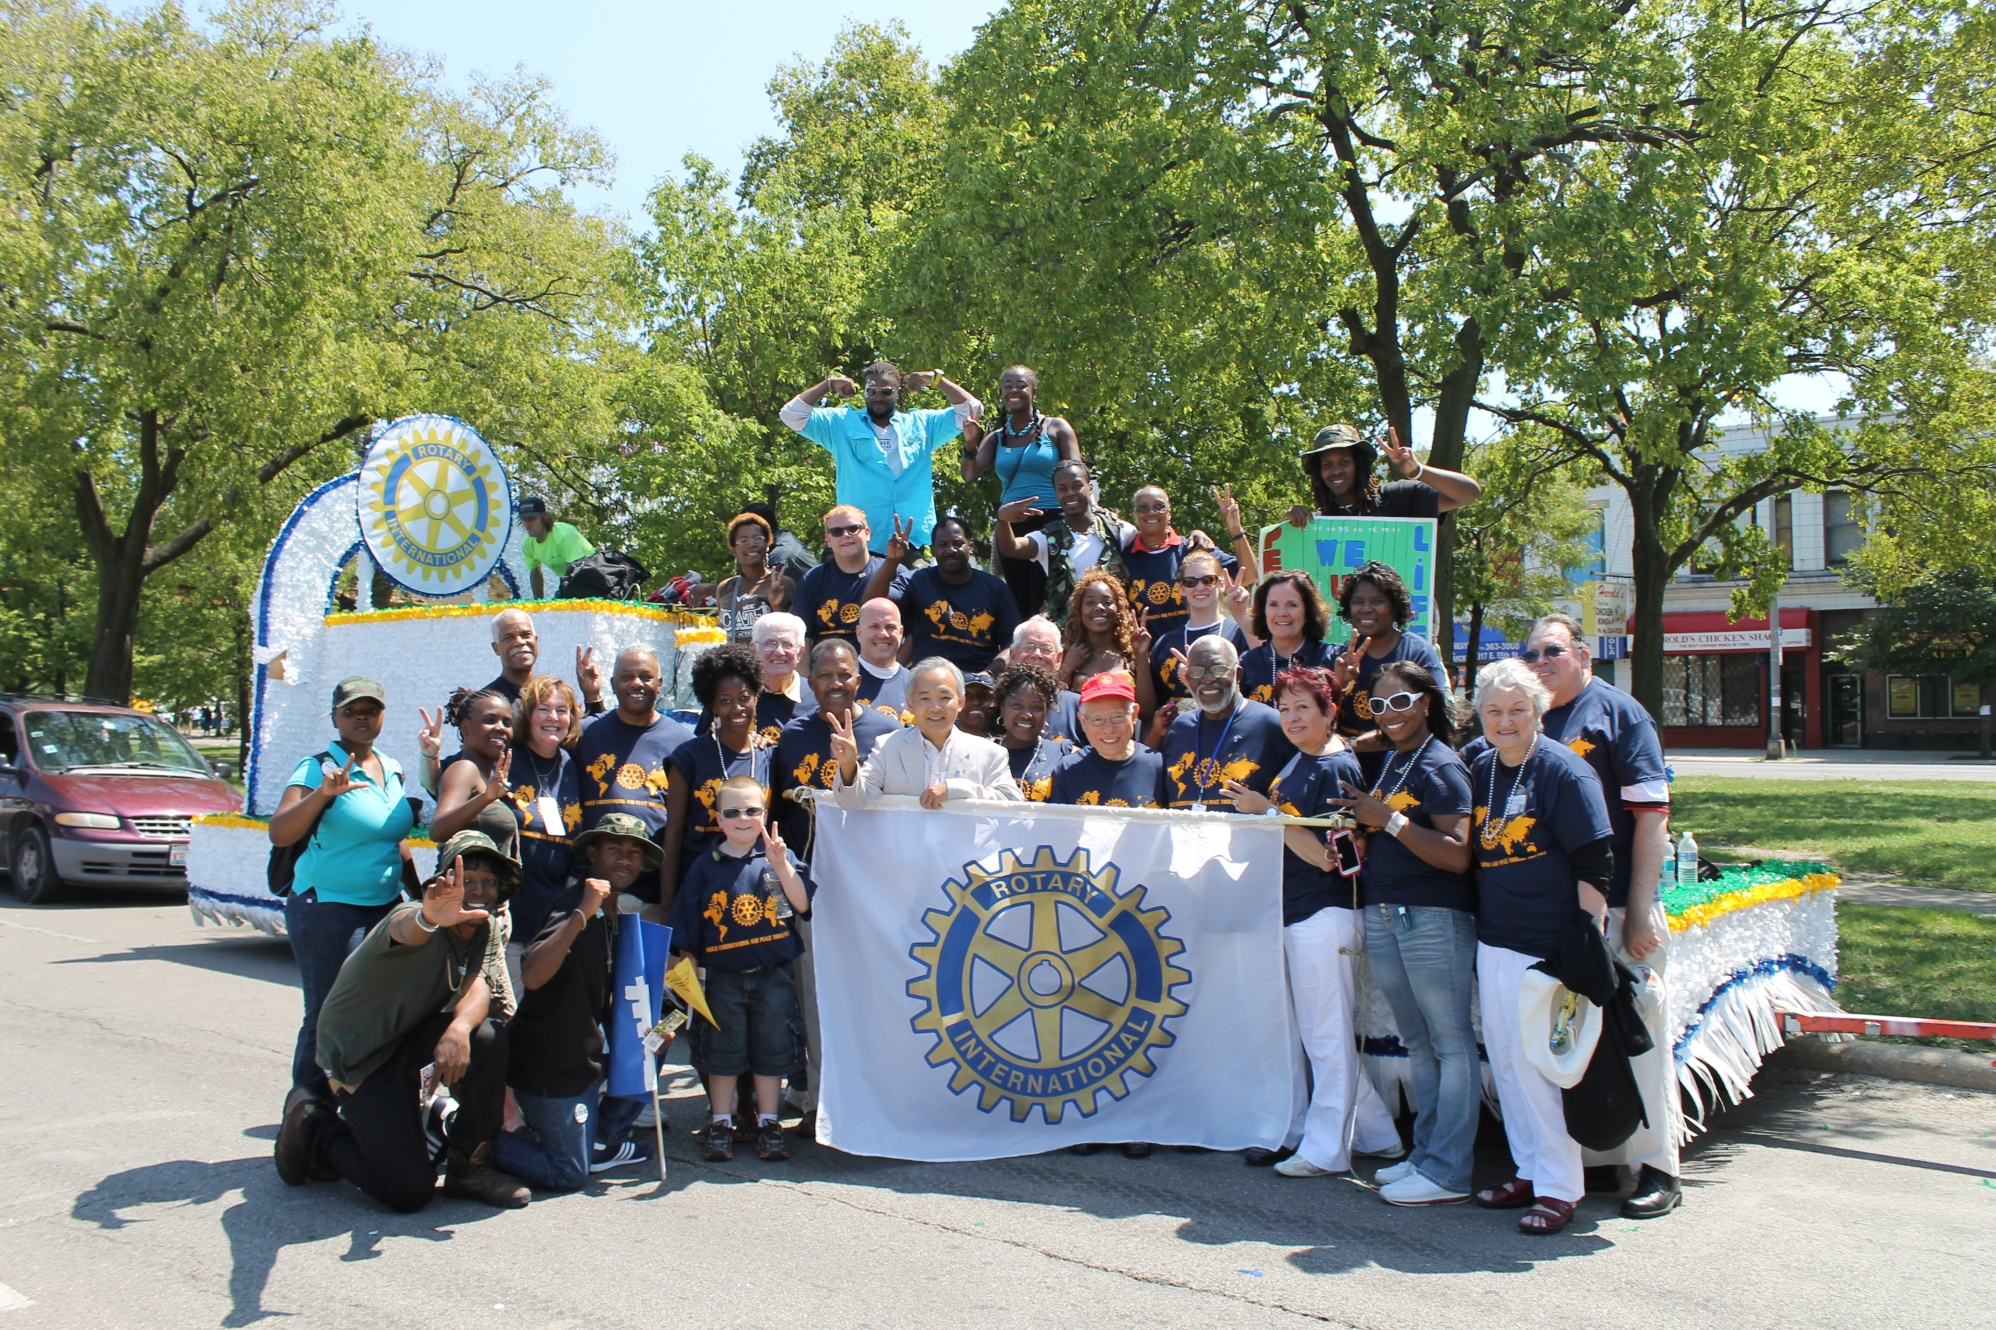 Rotarians attend the Bud Billiken parade to help spread the word about Peace Summits. Past RI President Tanaka is in front in a red hat!